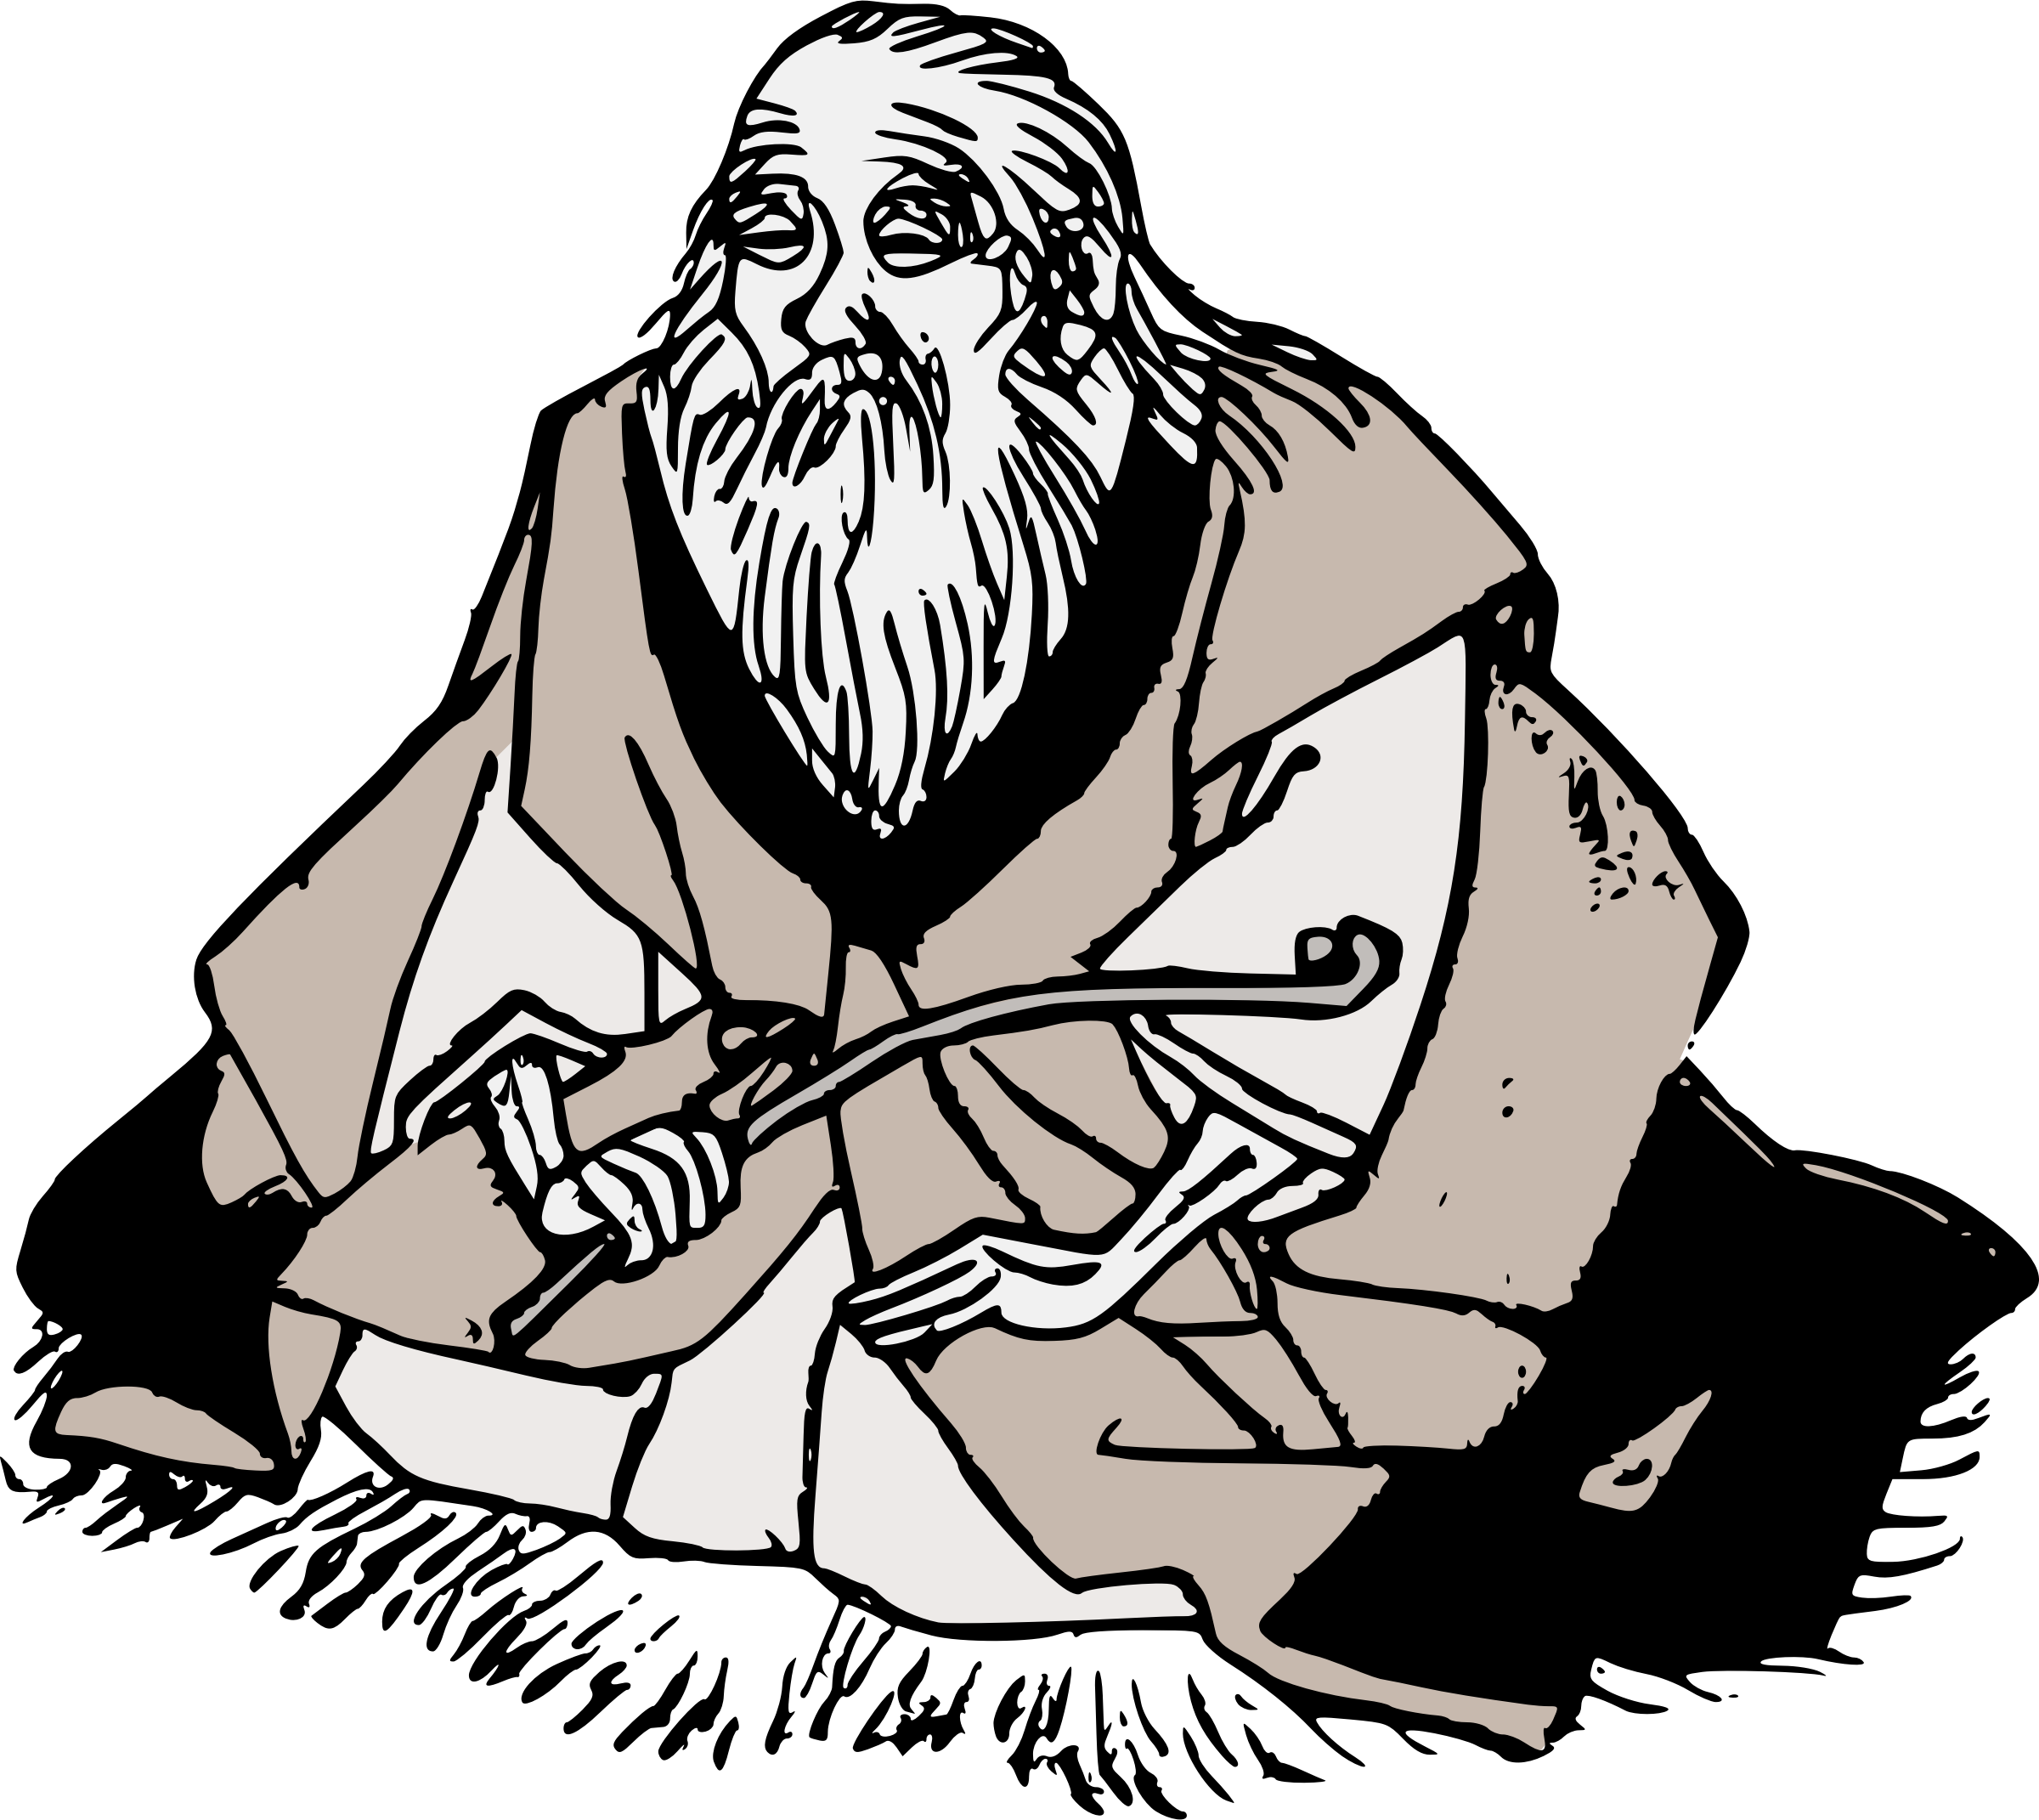 Japanese clipart garden. Wise old man new